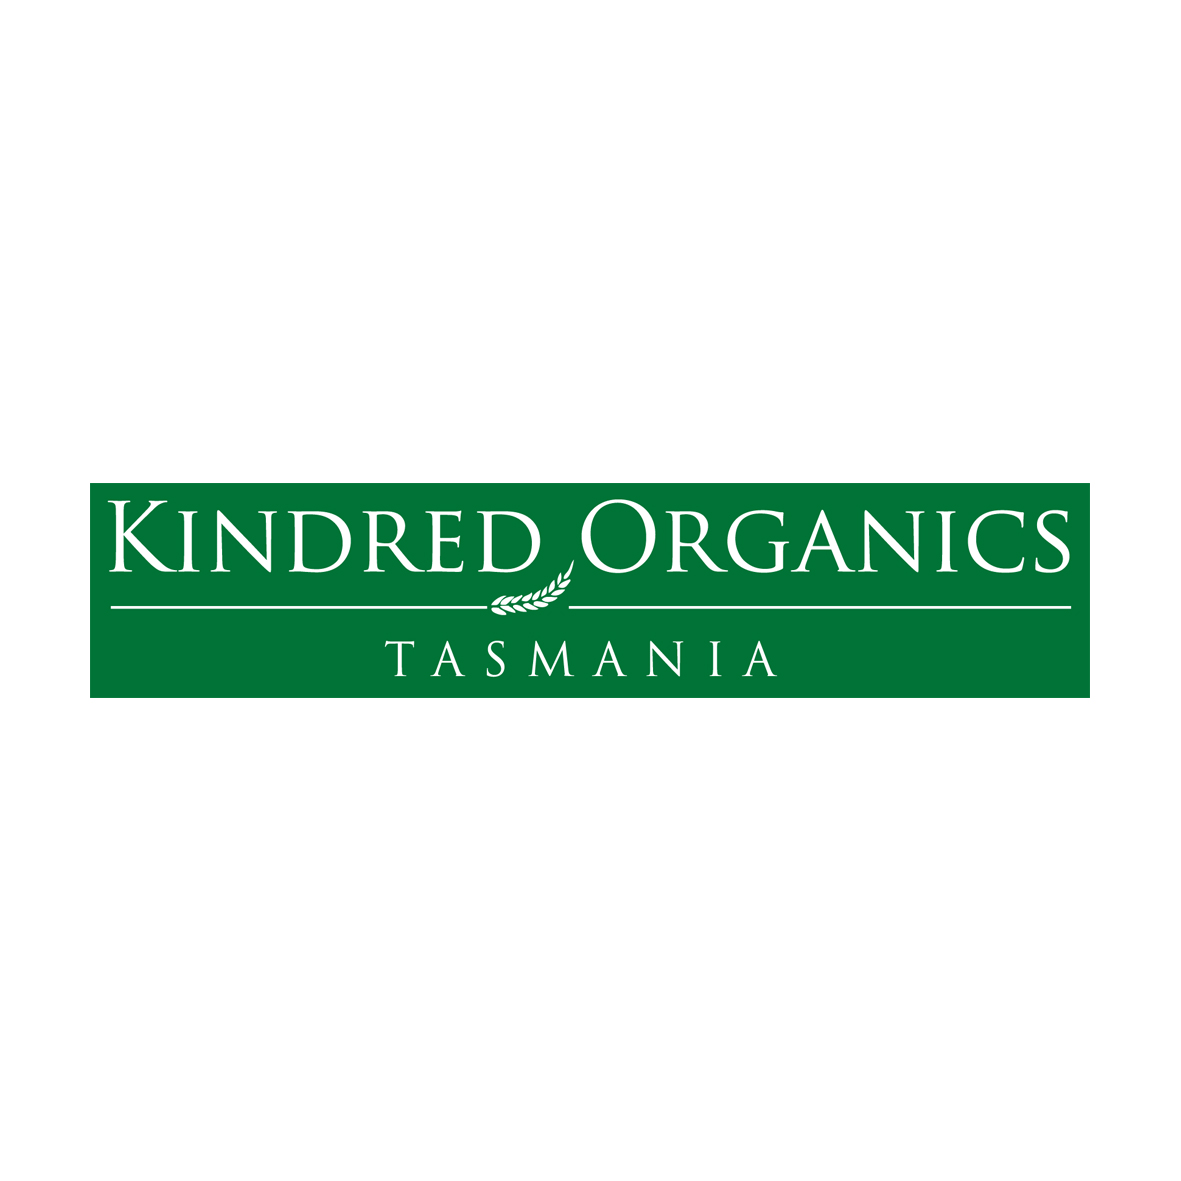 Kindred Organics Logo 2